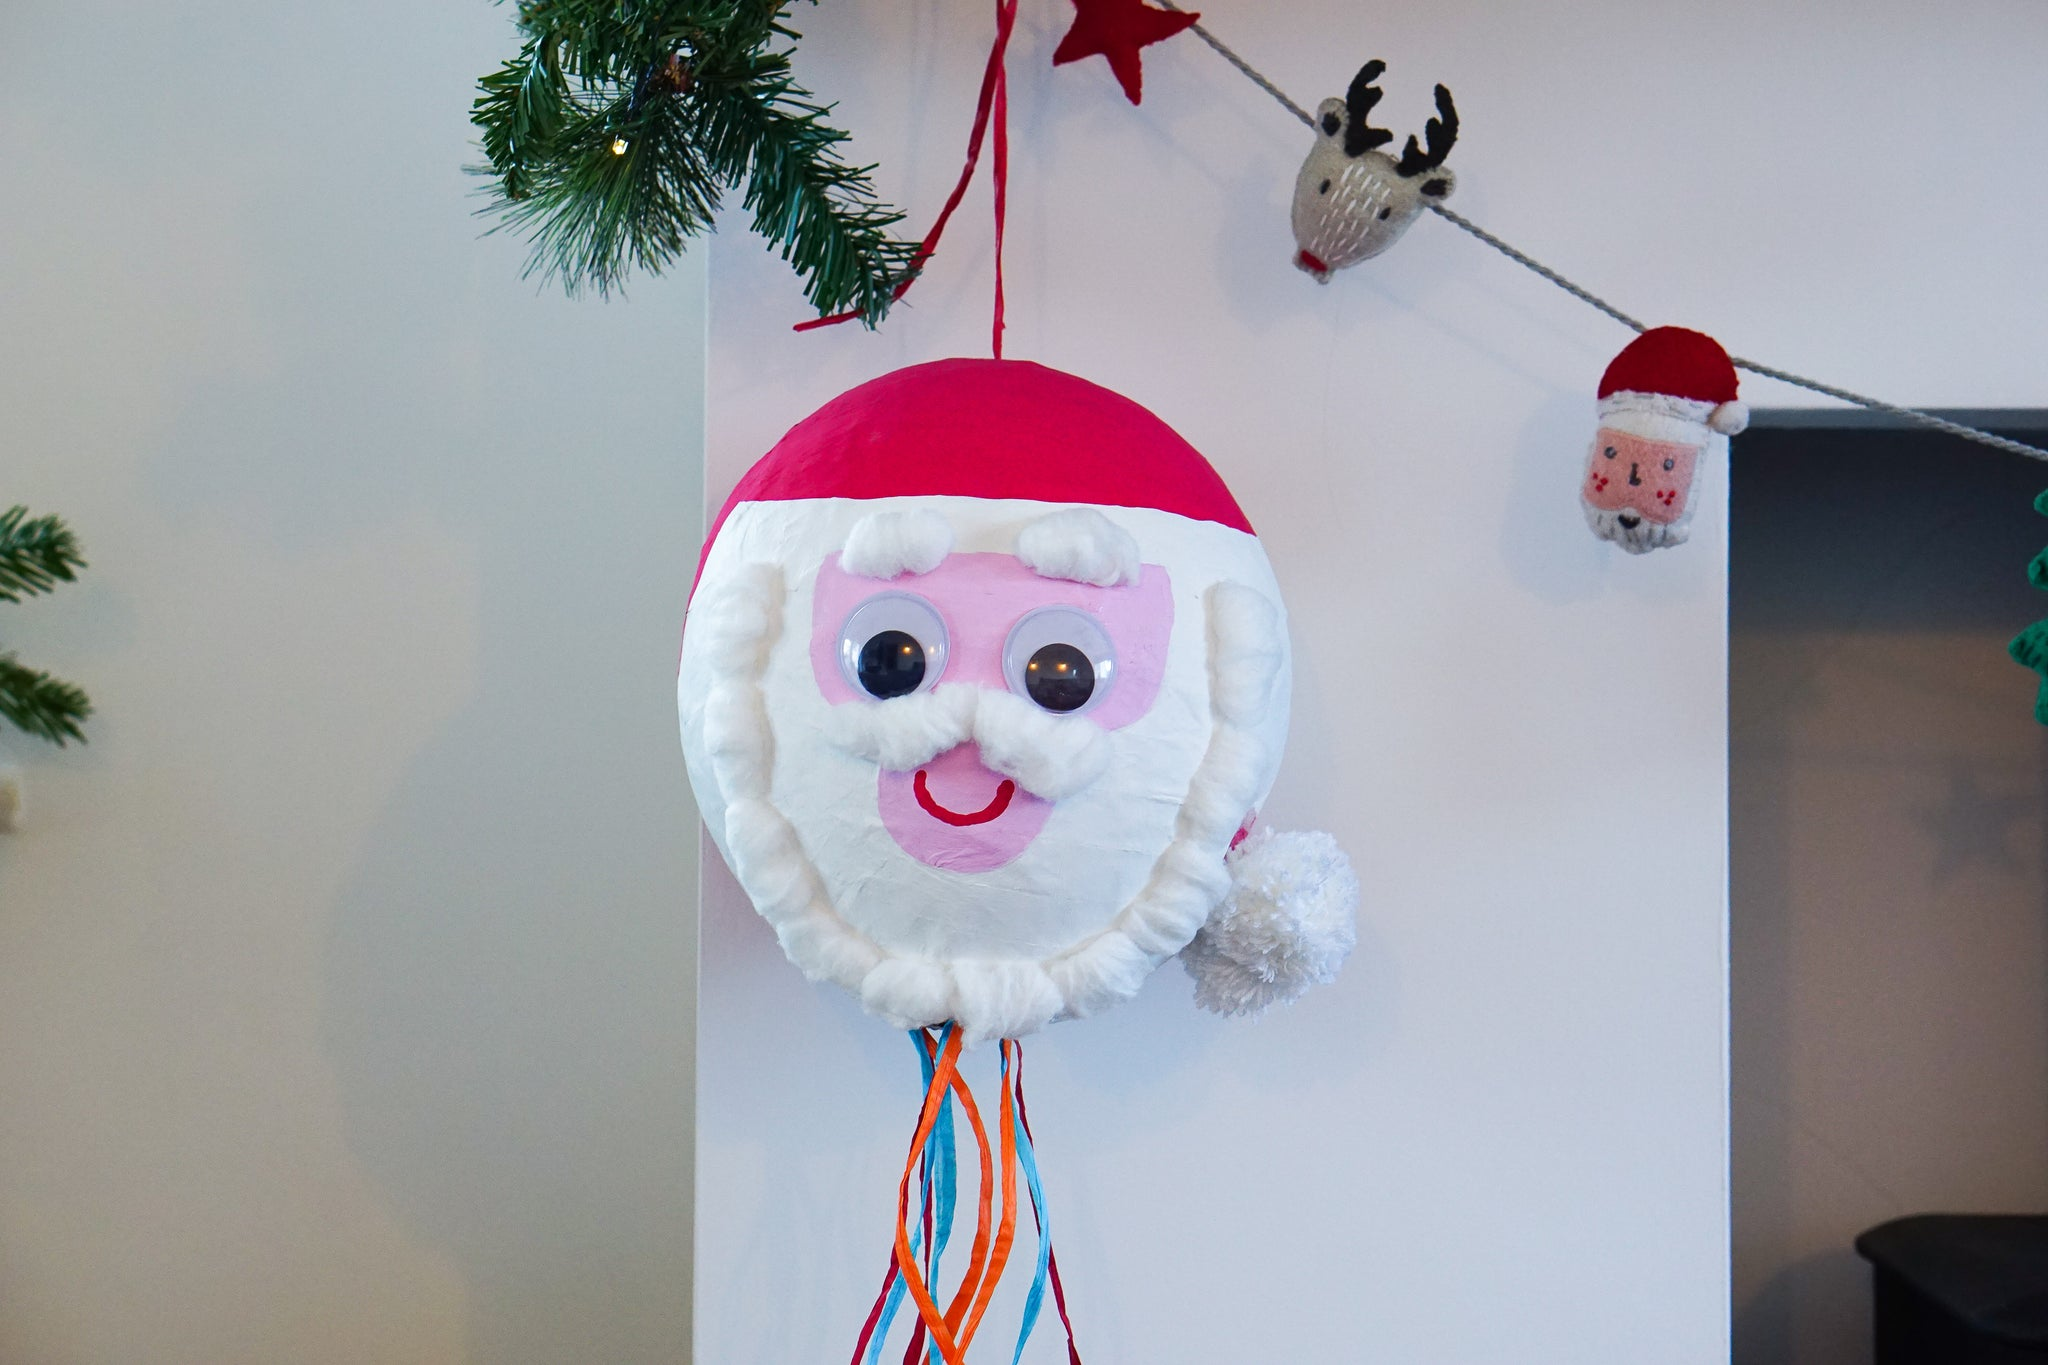 Make your own jolly Father Christmas piñata